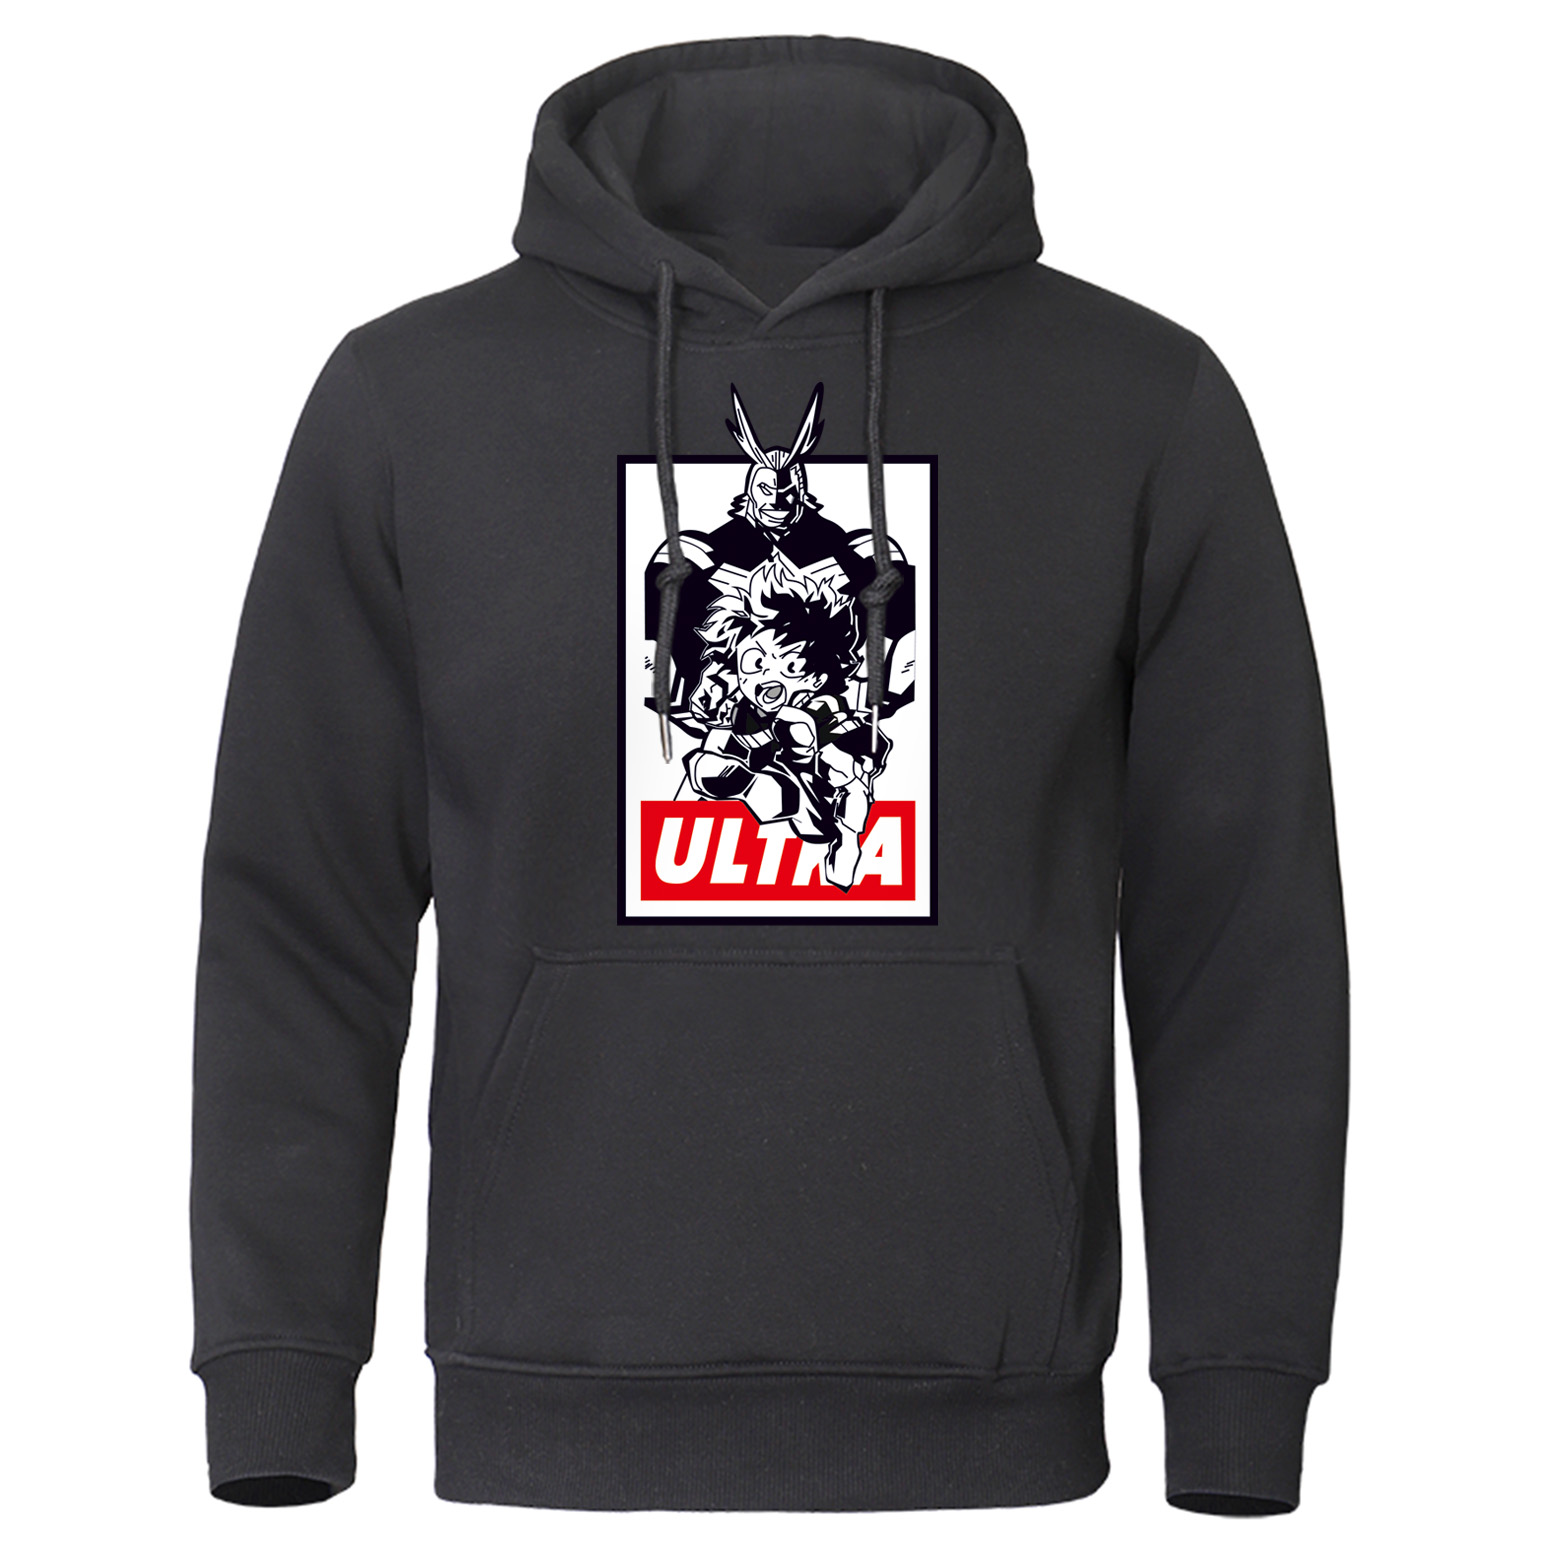 My Hero Academia All Might Midoriya Izuku Hoodies For Men Leisure Boku No Hero Anime Man Sweatshirts Novelty Autumn Pullover